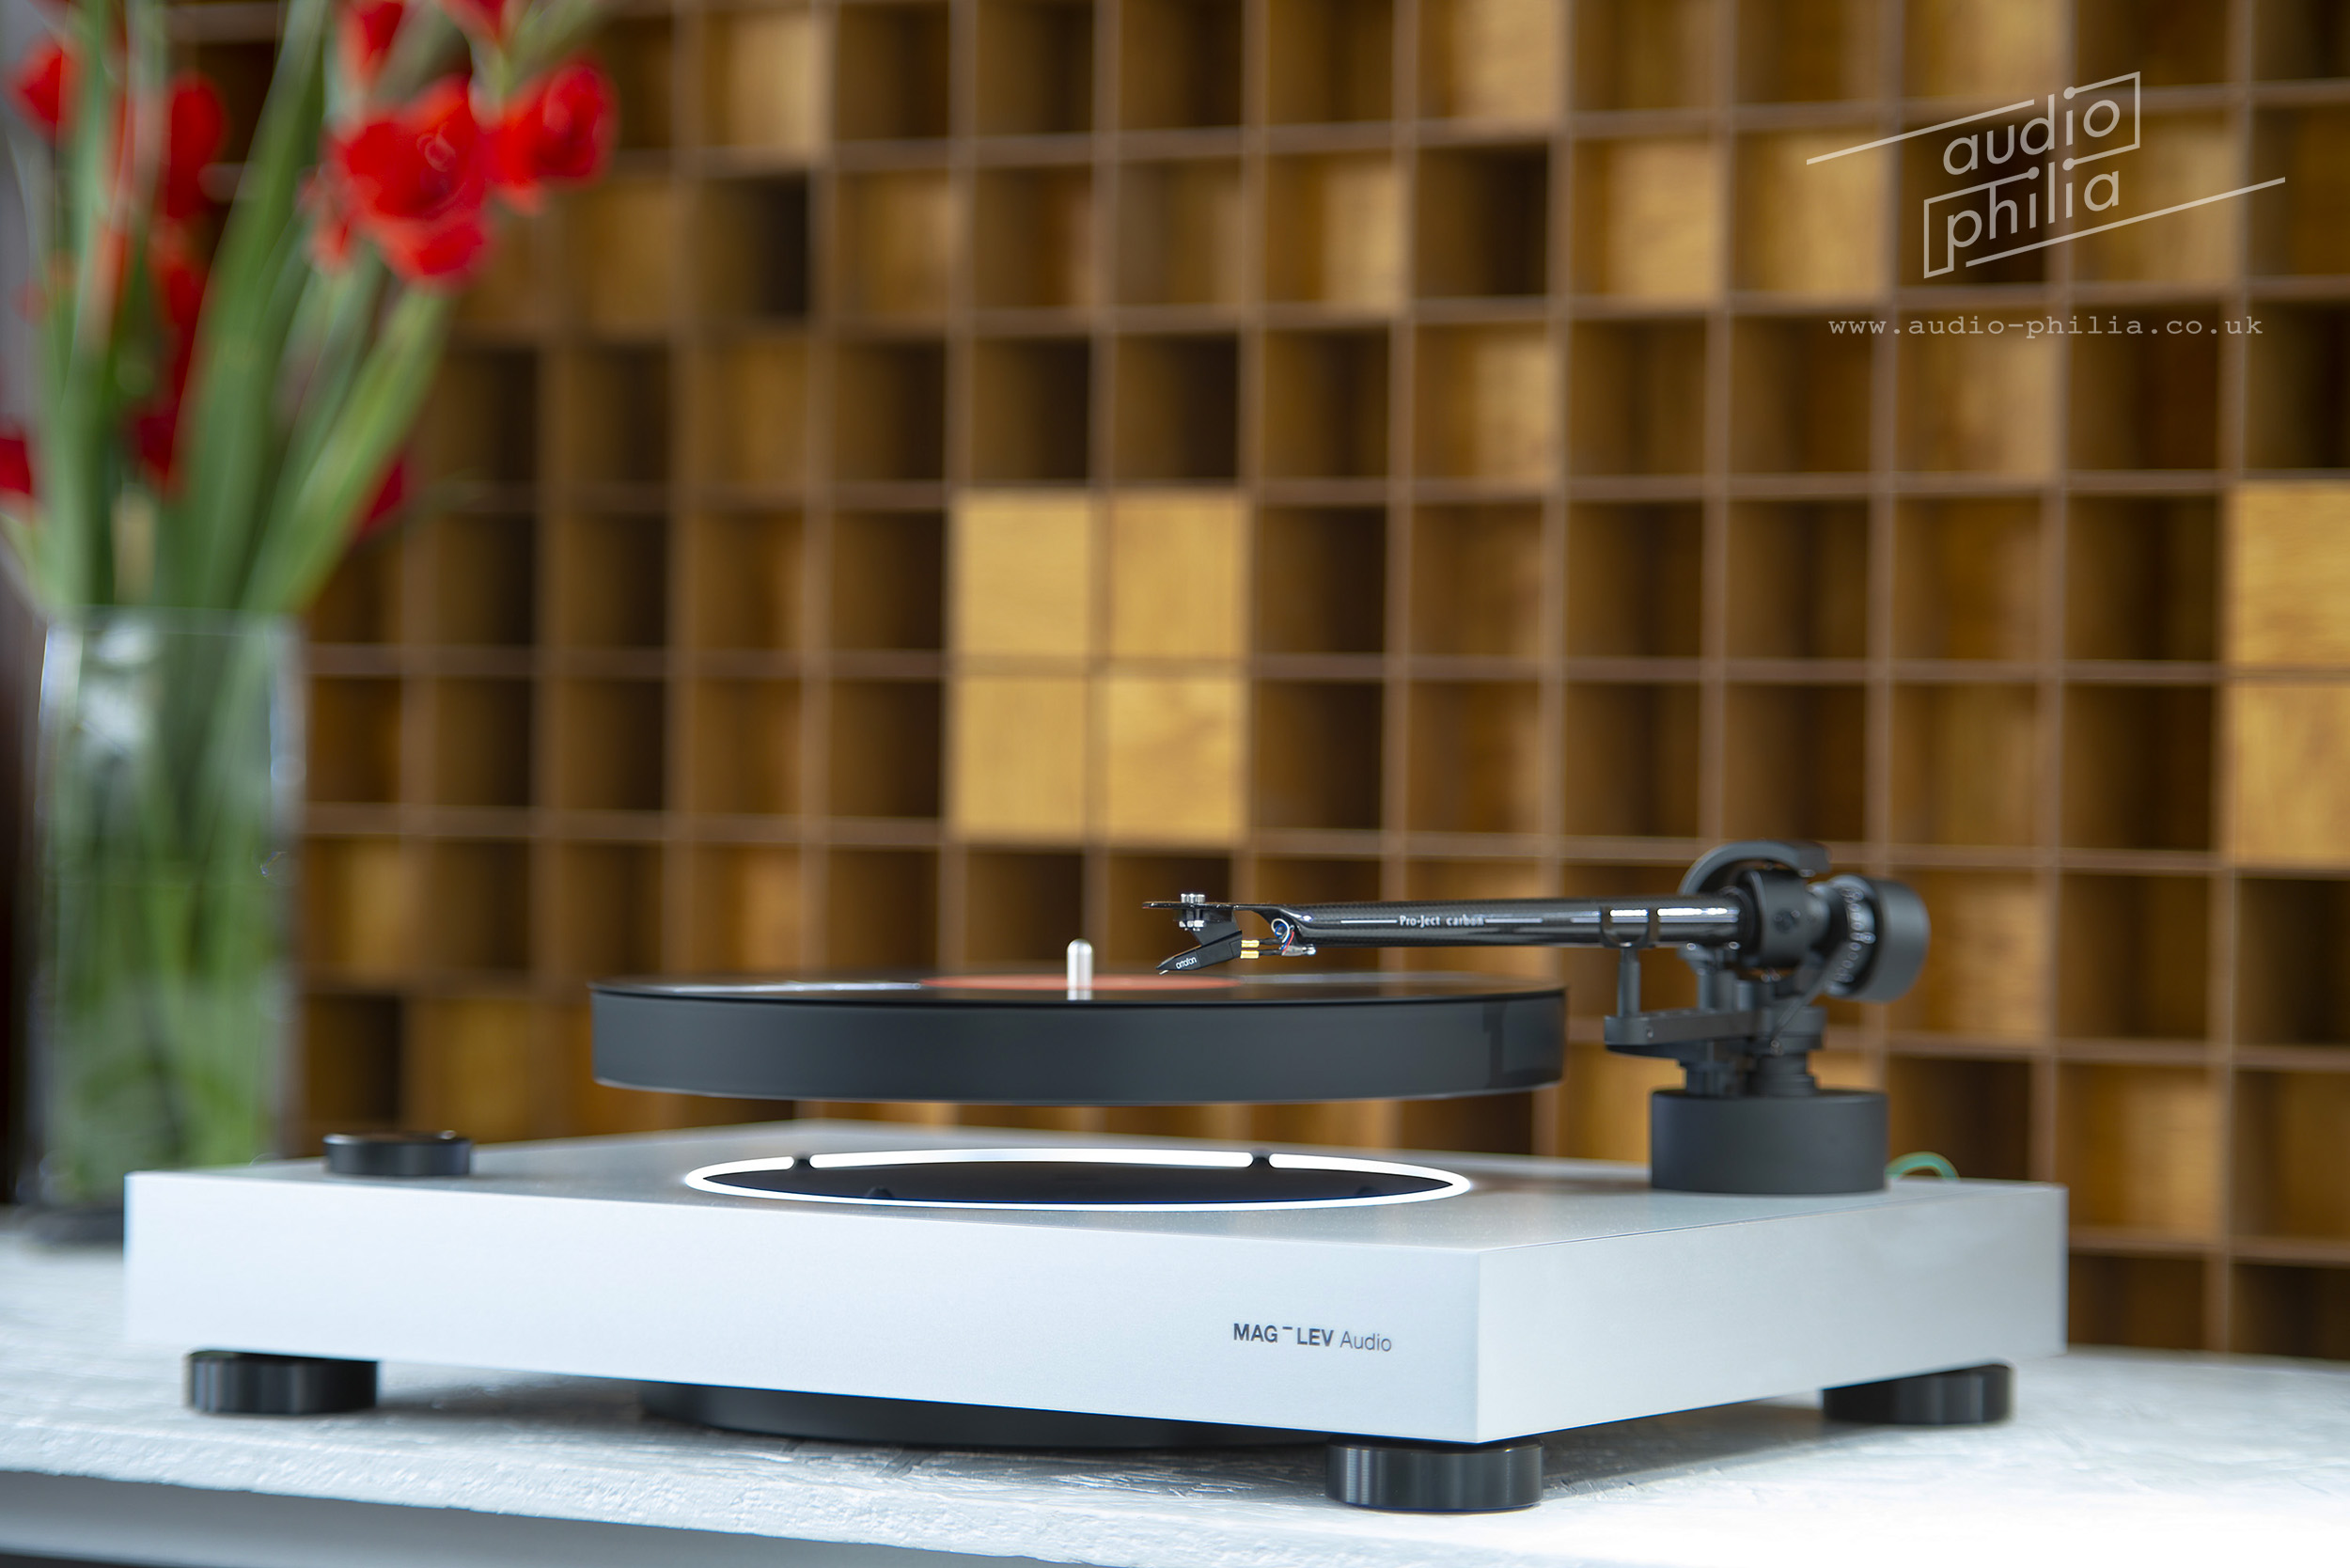 mag-lev-levitating-turntable-audio-philia-edinburgh-5.jpg